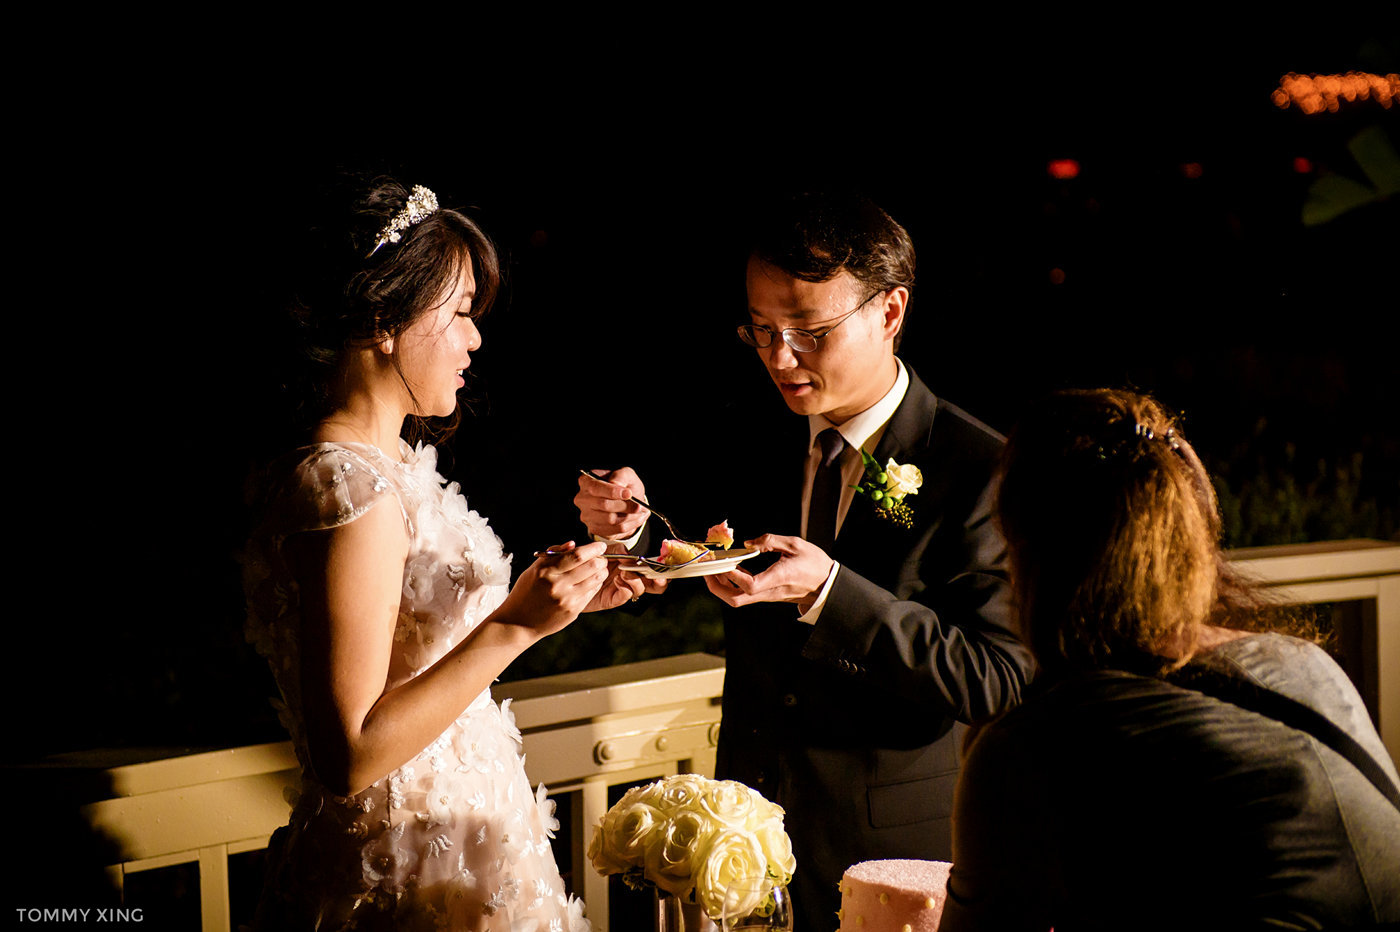 Qinglu Meng & Daozheng Chen Wedding Slideshow-224-E.JPG